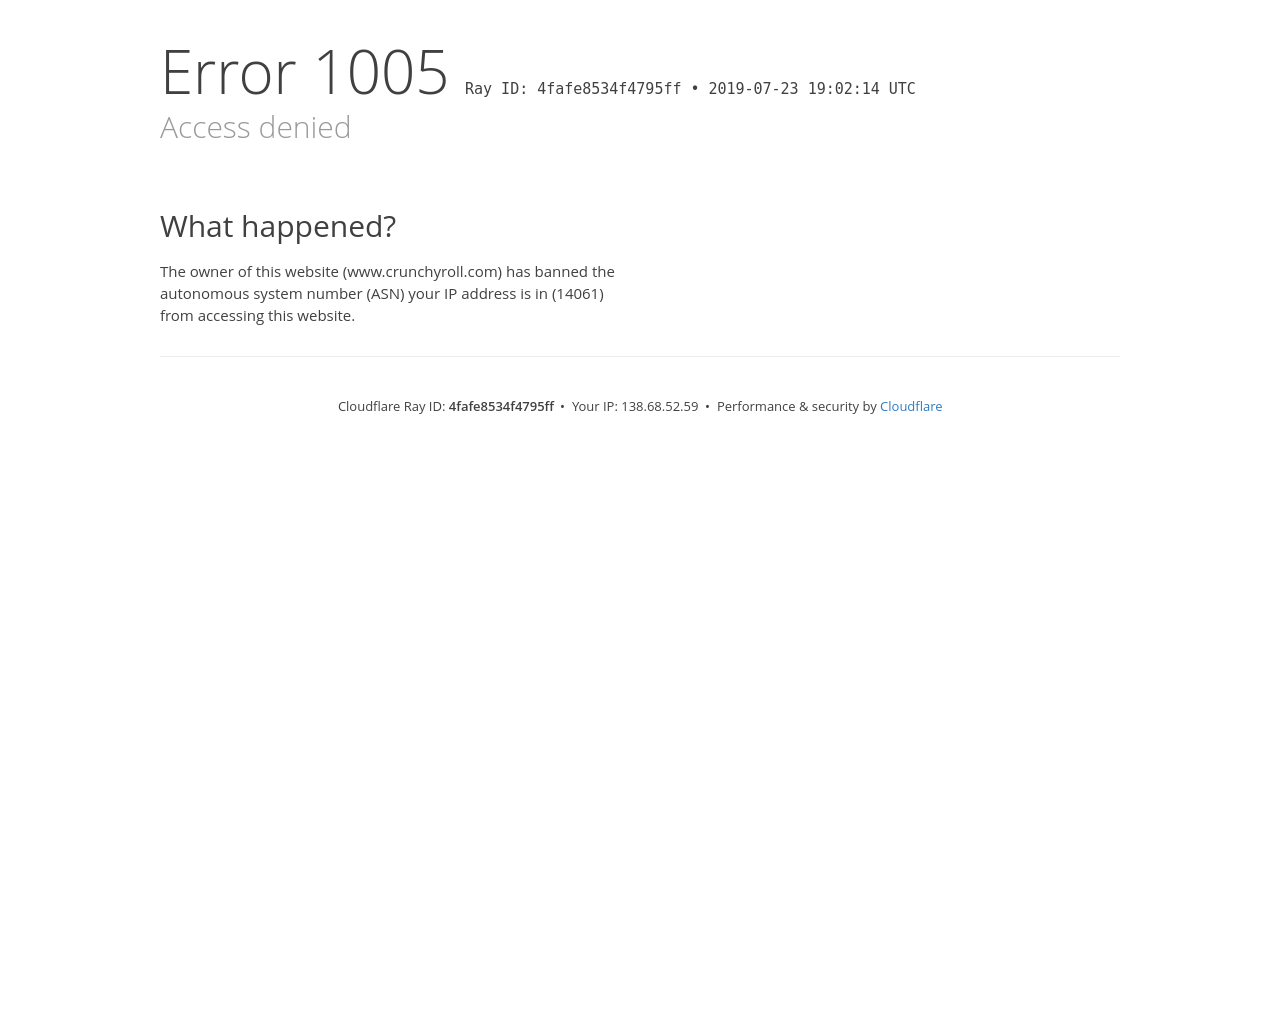 Access Denied Www Crunchyroll Com Used Cloudflare To